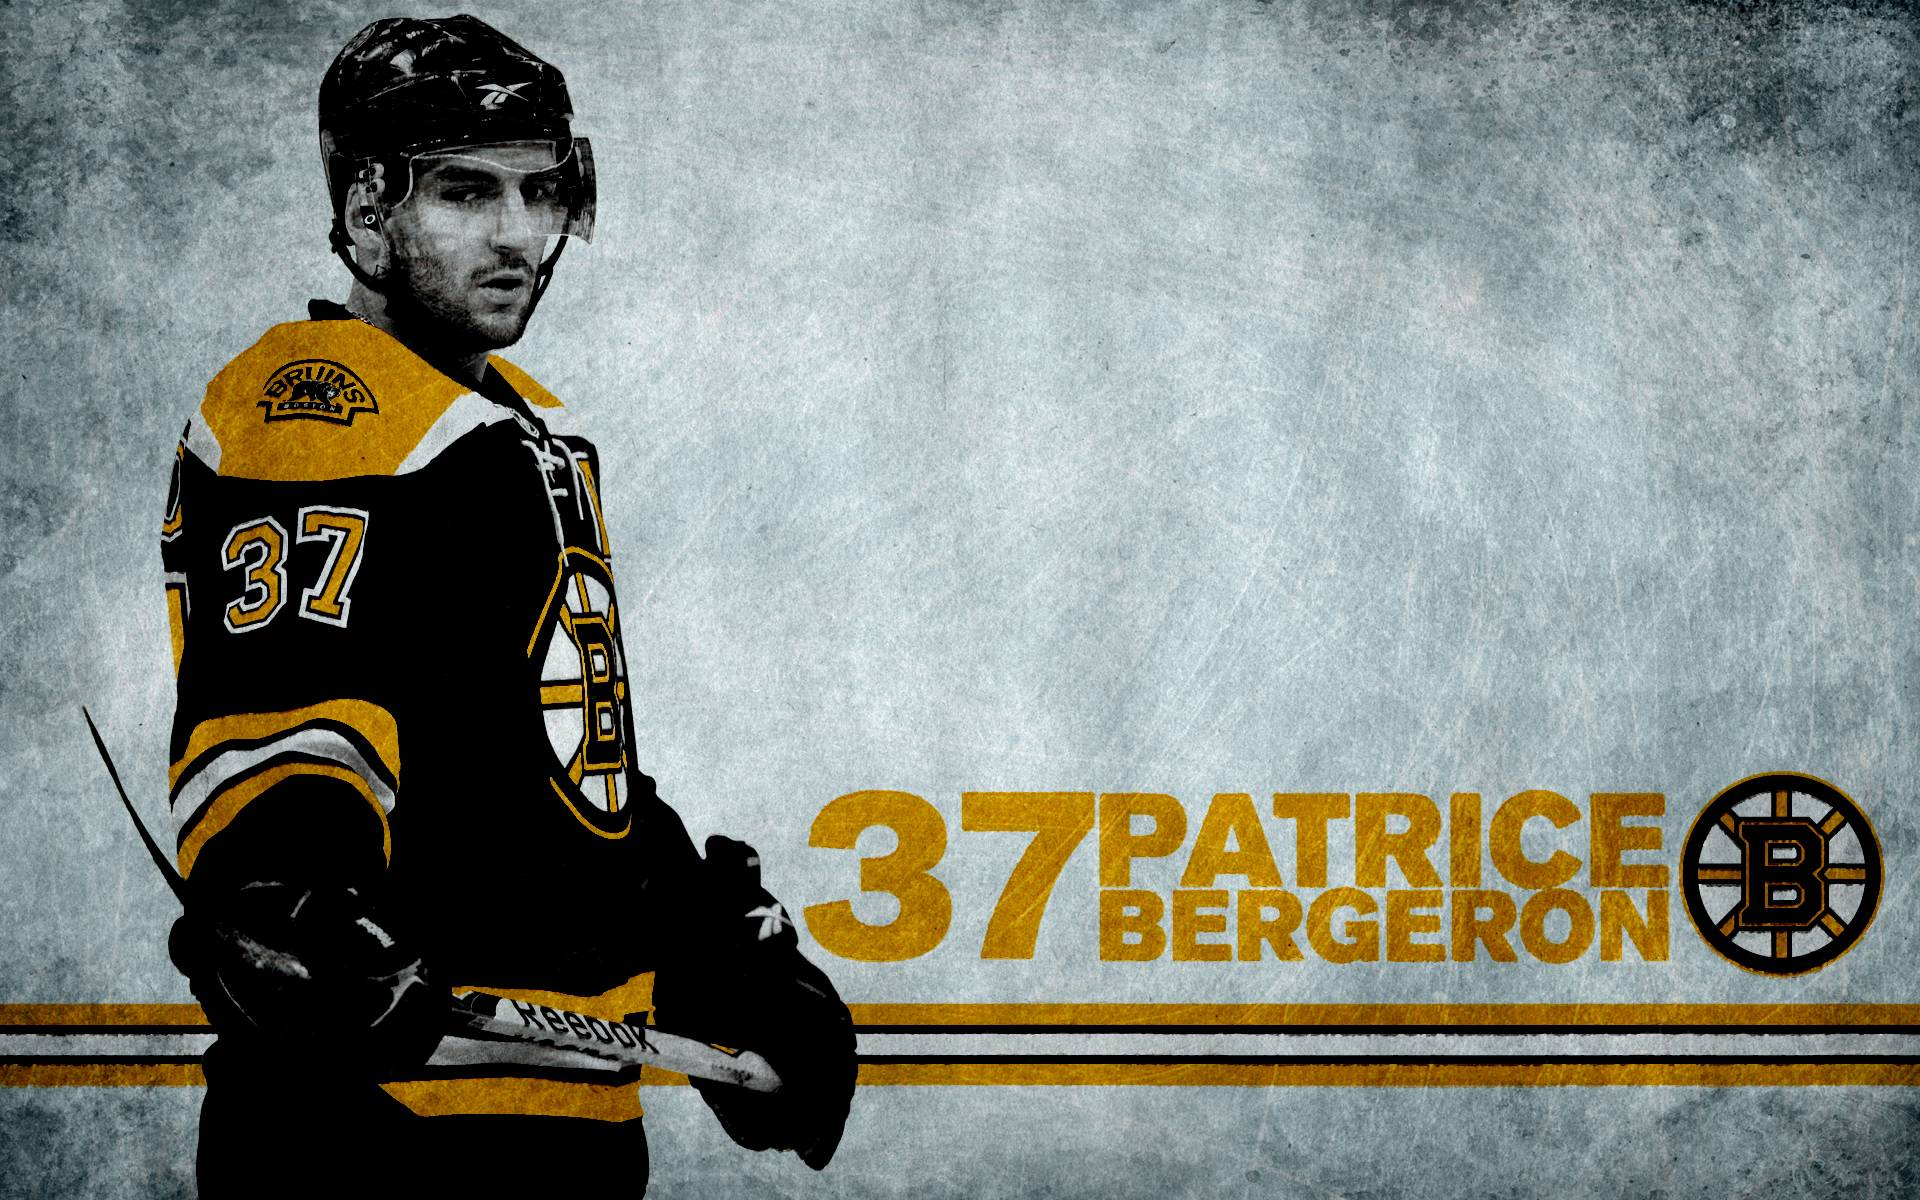 Boston Bruins Wallpapers Free Download  PixelsTalk Awesome Bruins Wall  Bruins Wallpapers 1920x1200